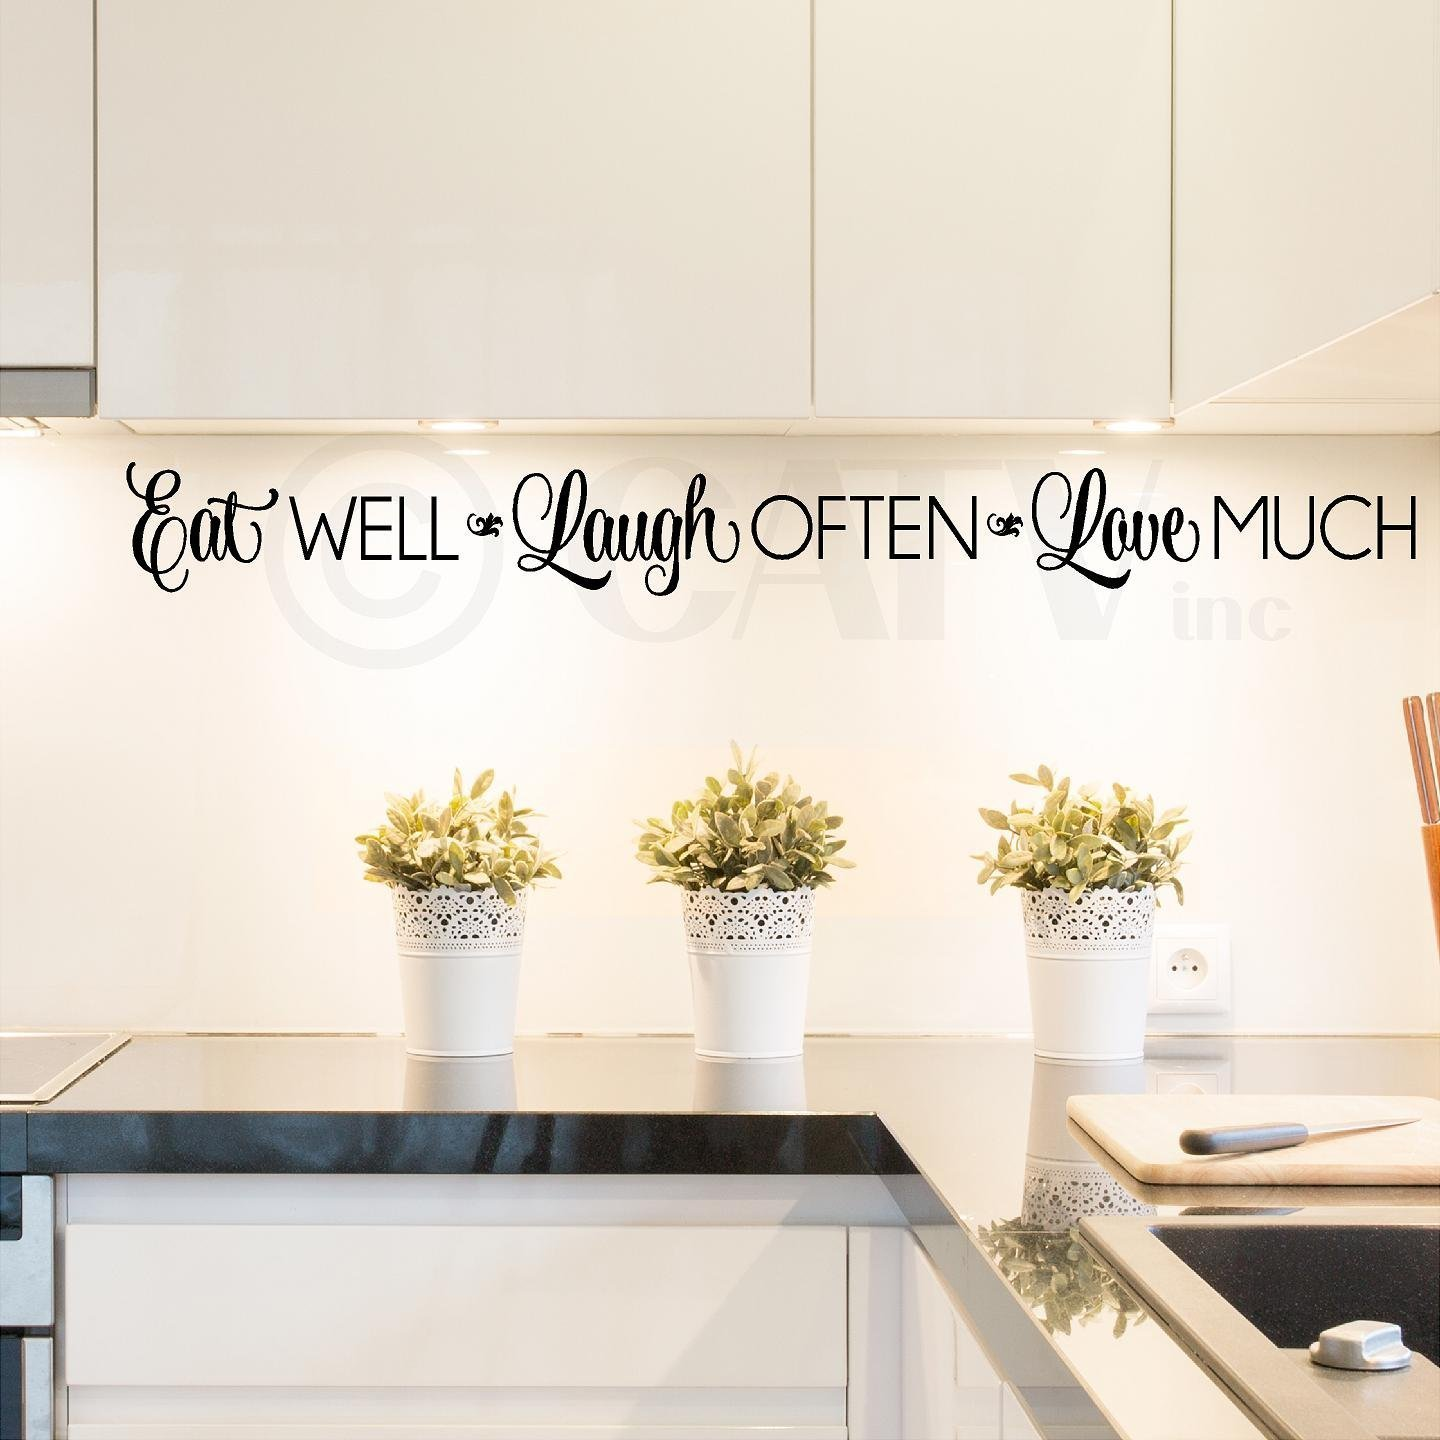 "Eat Well, Laugh Often, Love Much Vinyl Lettering Wall Decal Sticker (4"" H x 42"" L, Black)"